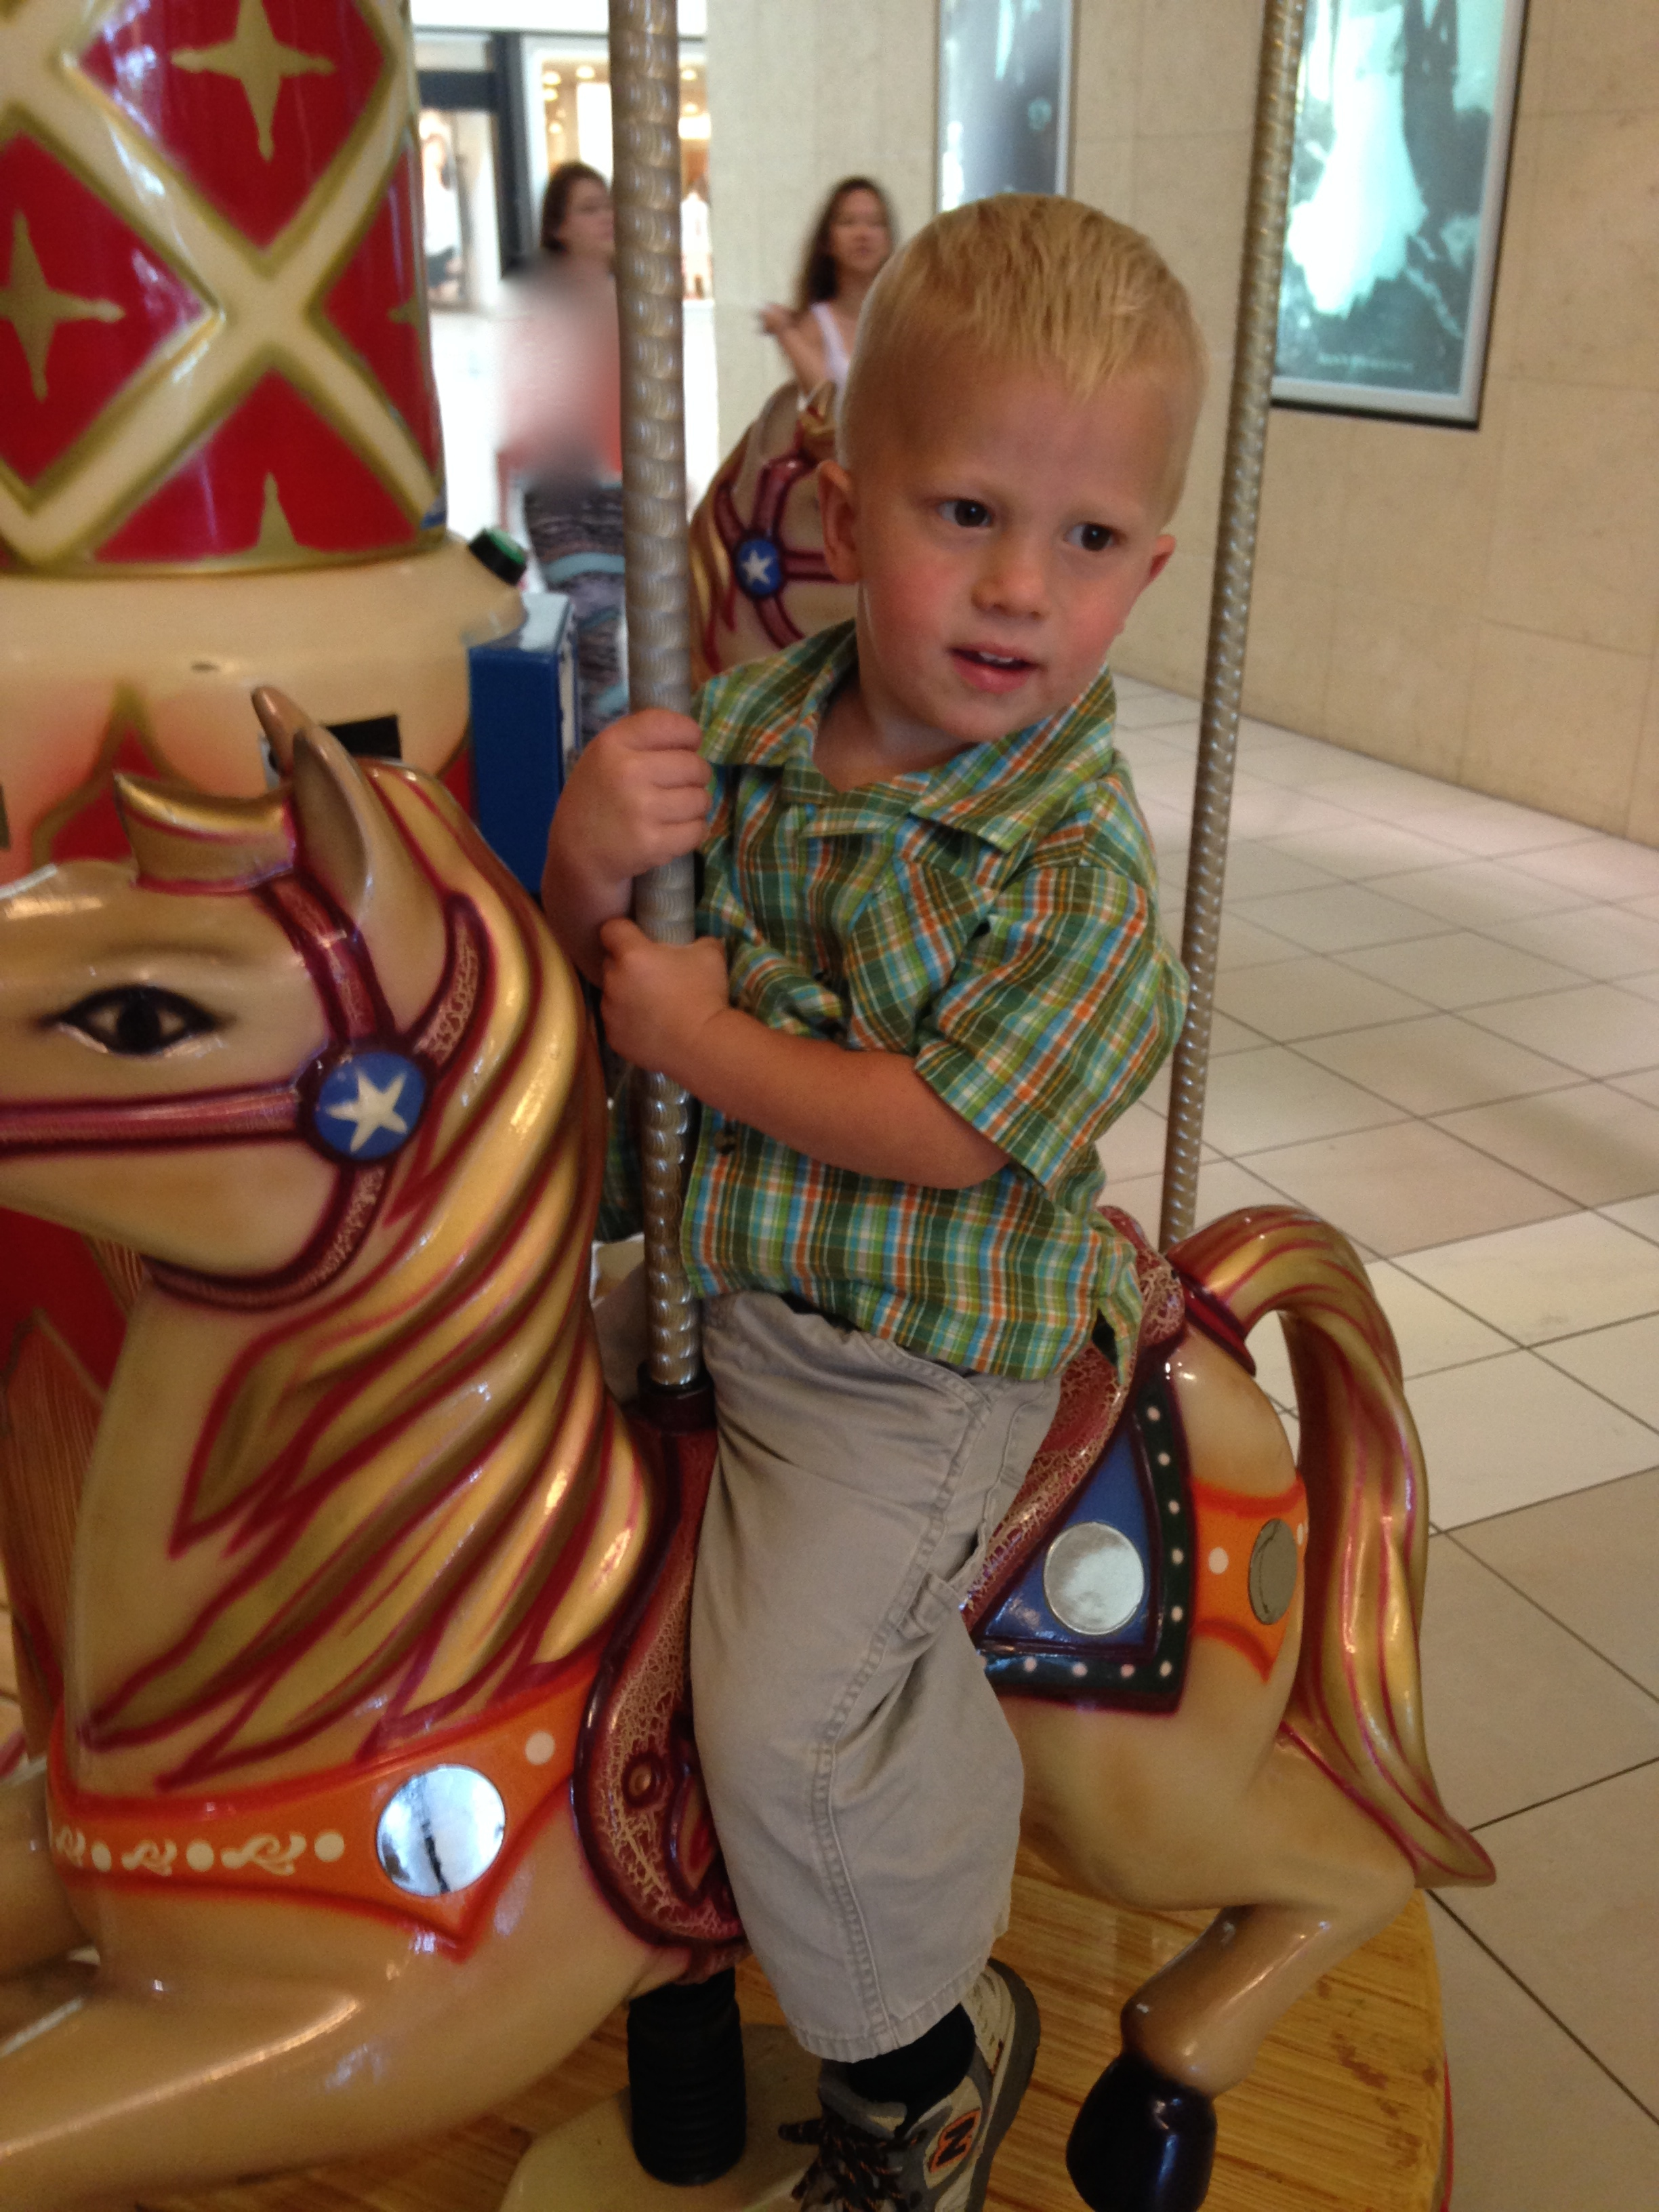 Kolby got to ride the carousel.